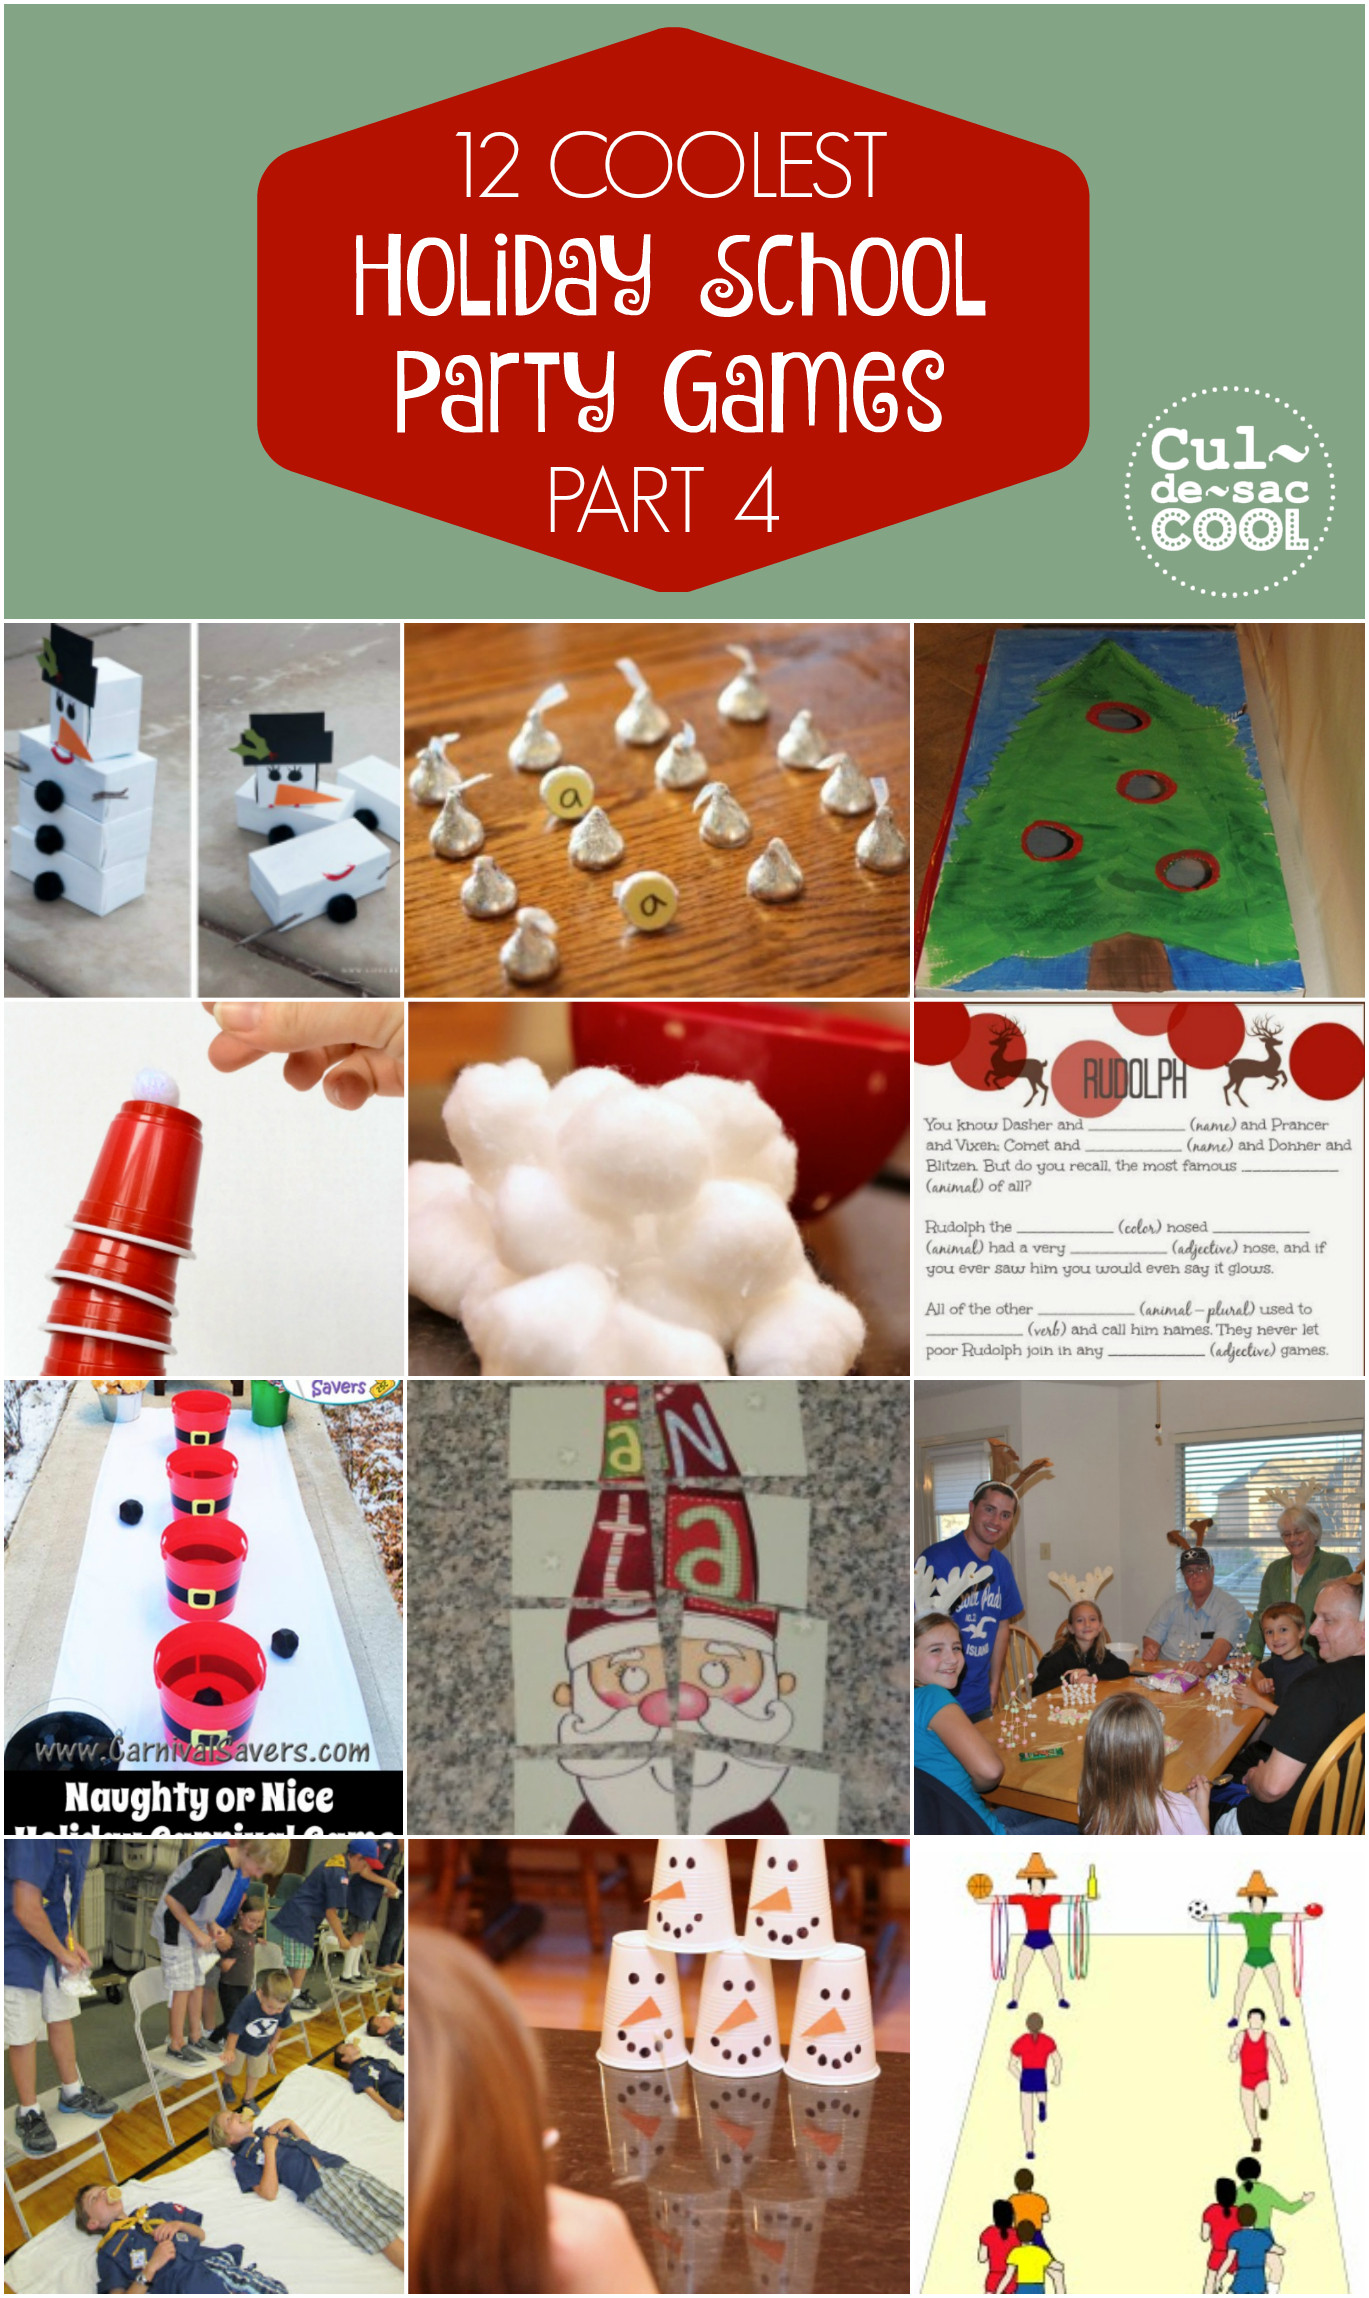 School Christmas Party Ideas  12 COOLEST HOLIDAY SCHOOL PARTY GAMES — PART 4